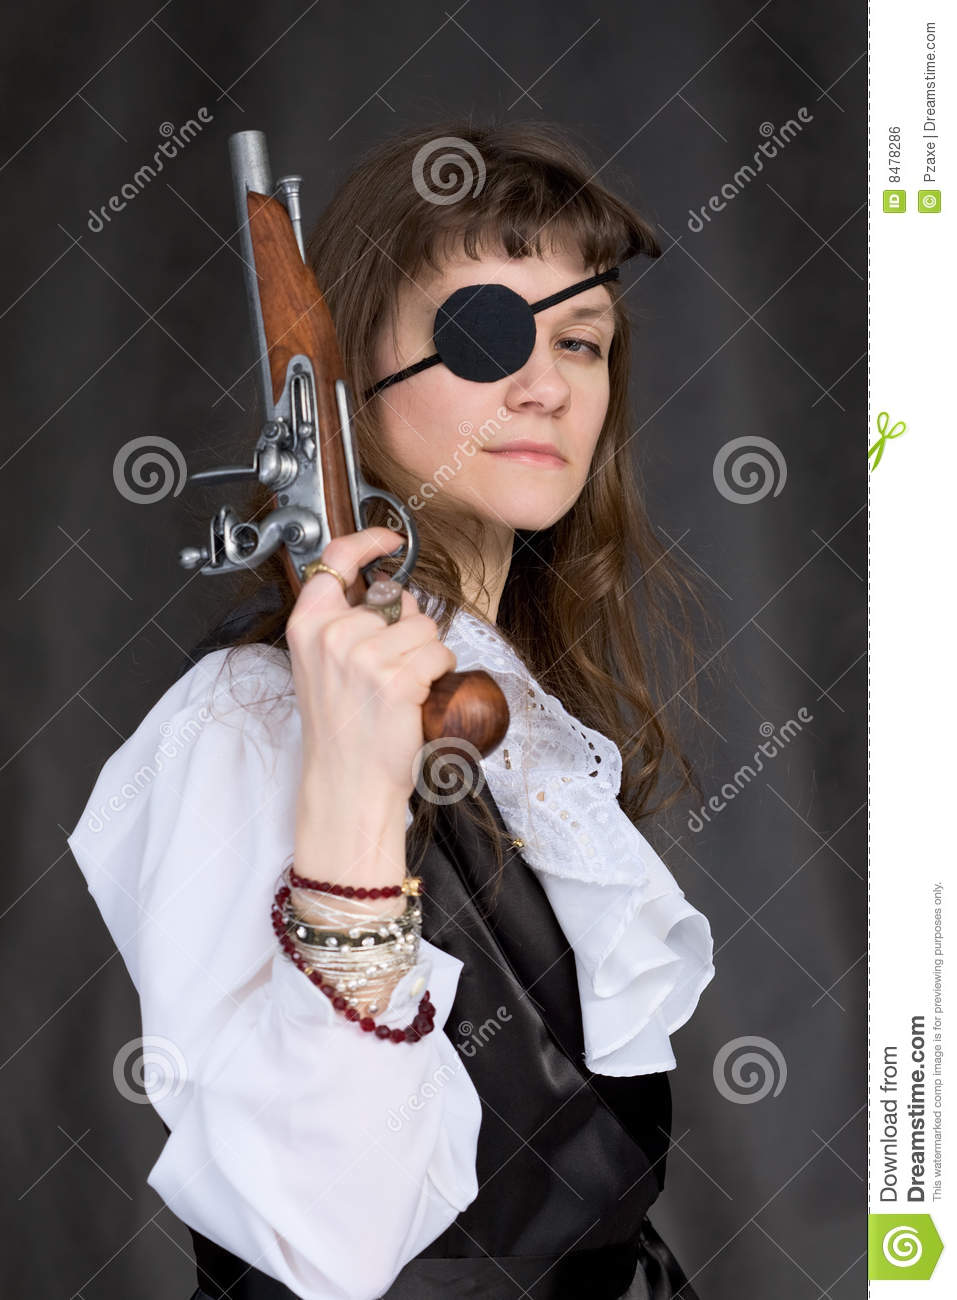 Girl - Pirate With Pistol In Hand And Eye Patch Stock